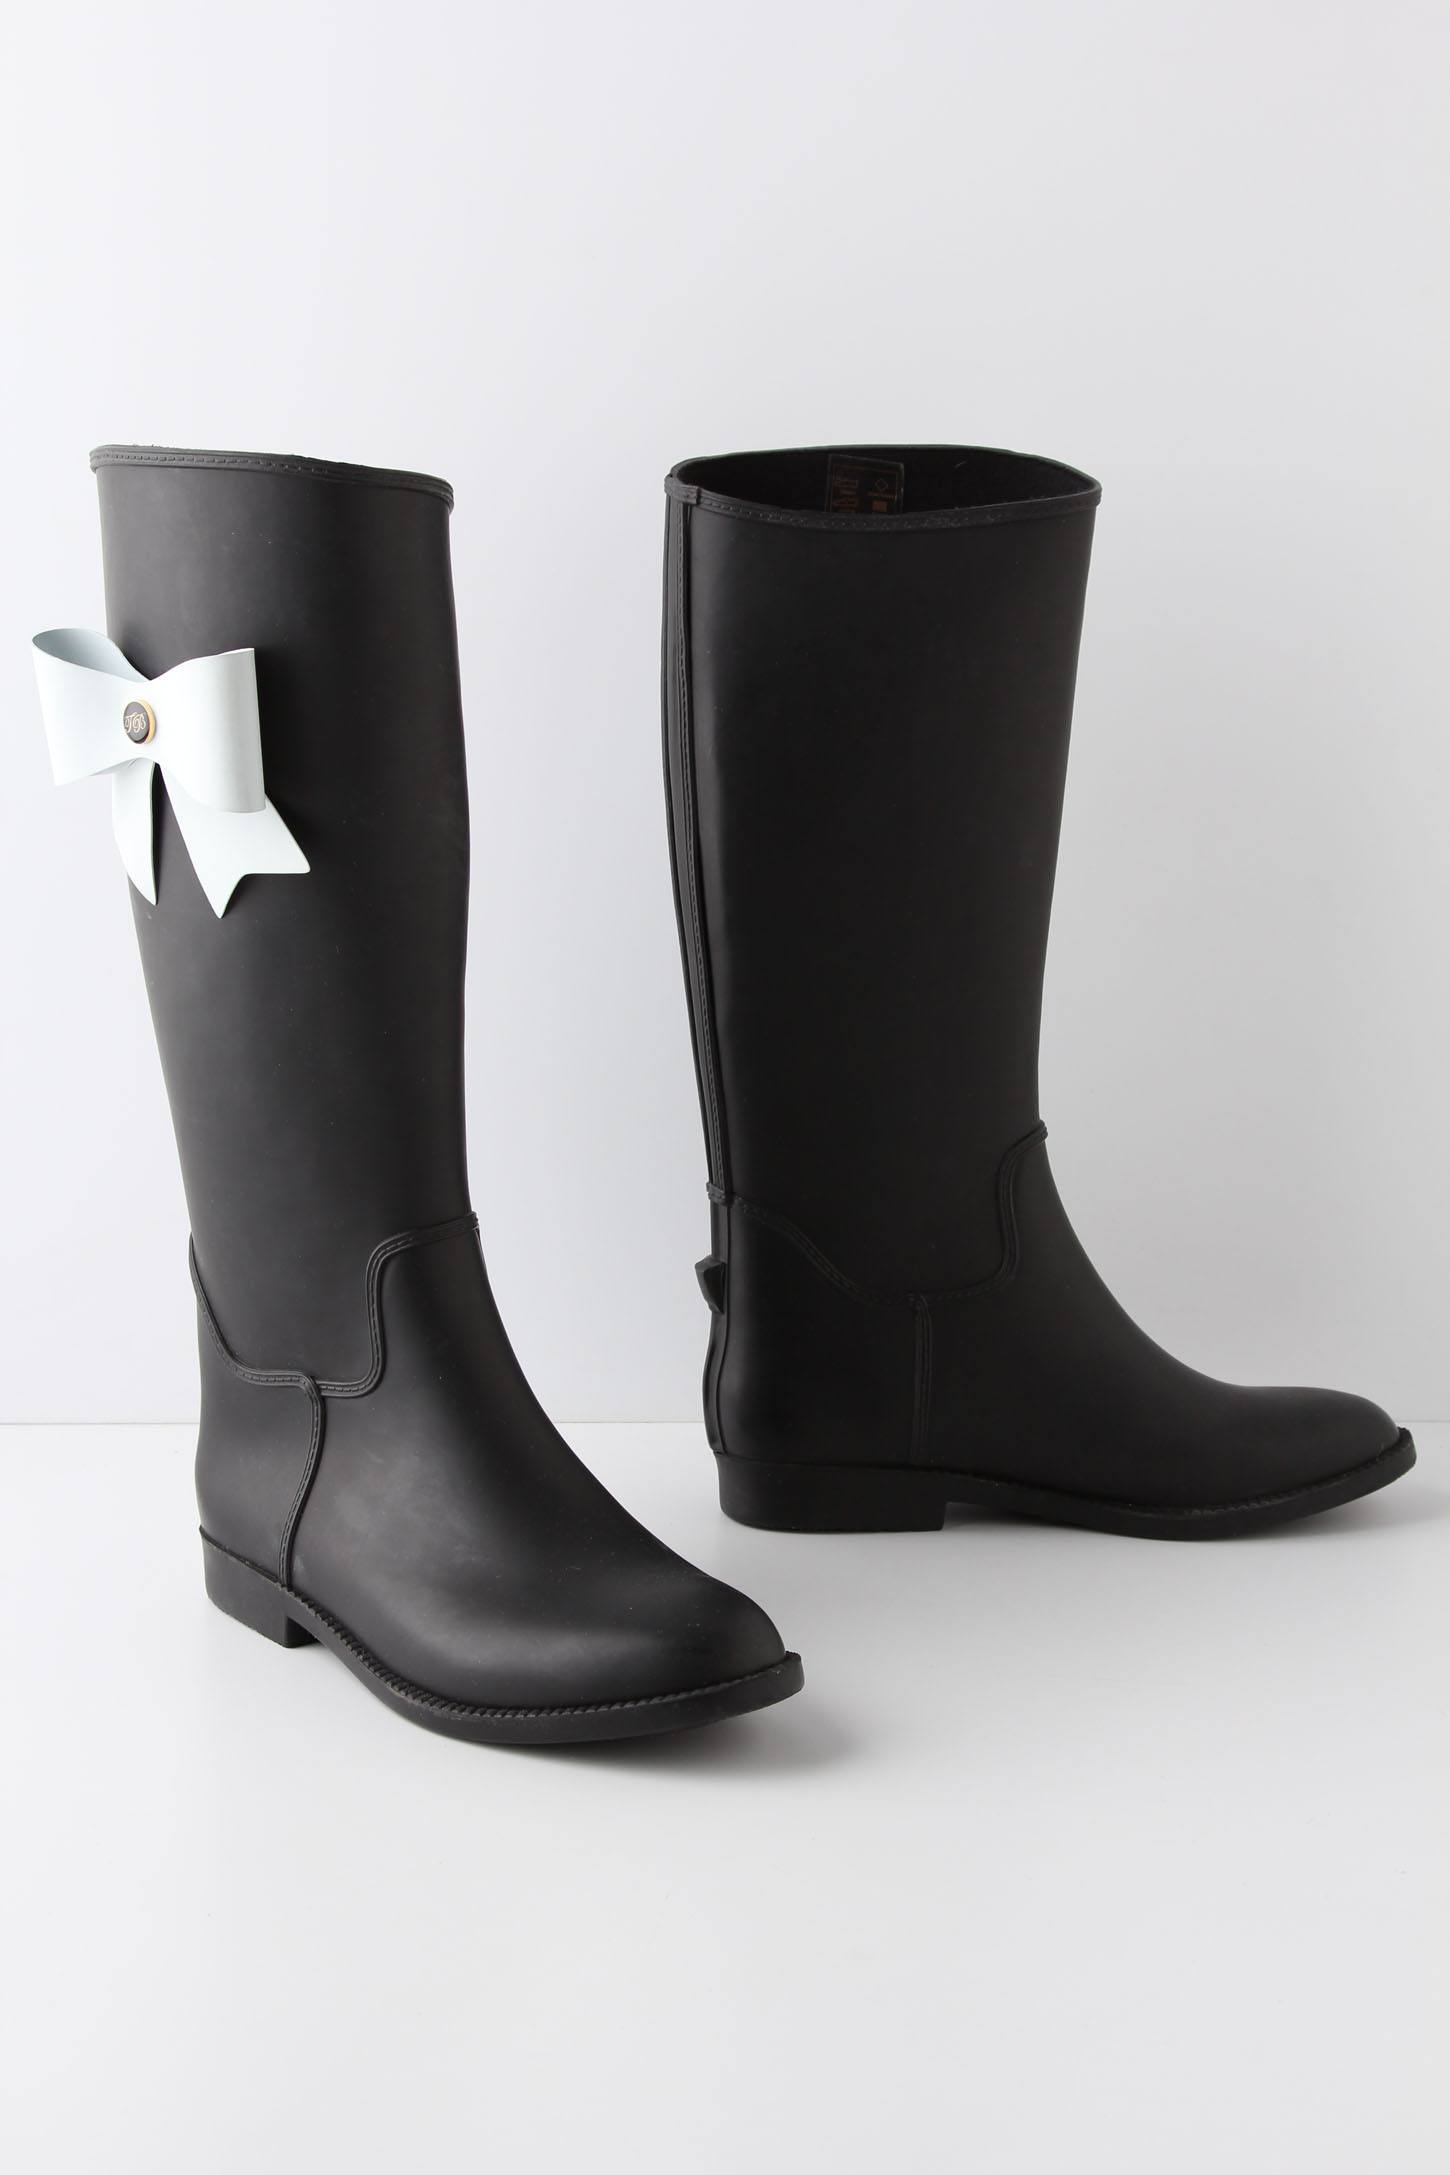 Charlie Rain Boots | Anthropologie